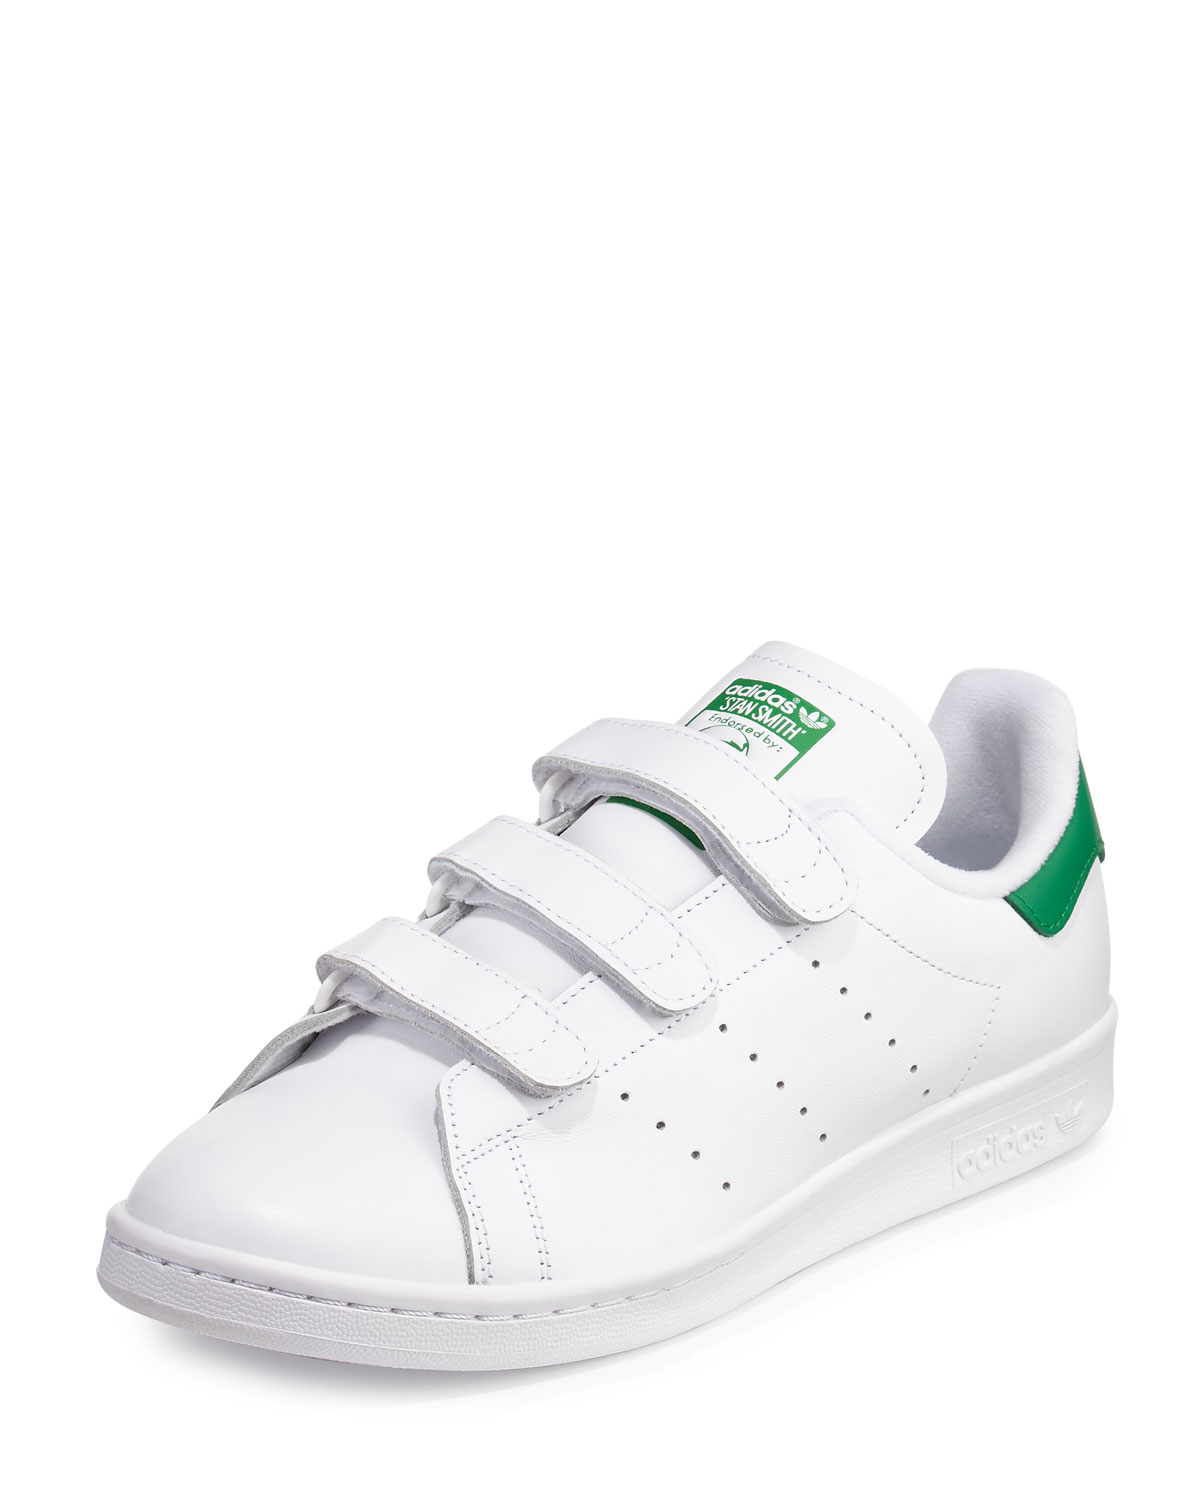 on sale 321a3 1182d Men's Stan Smith Triple-Strap Sneaker, White/Green